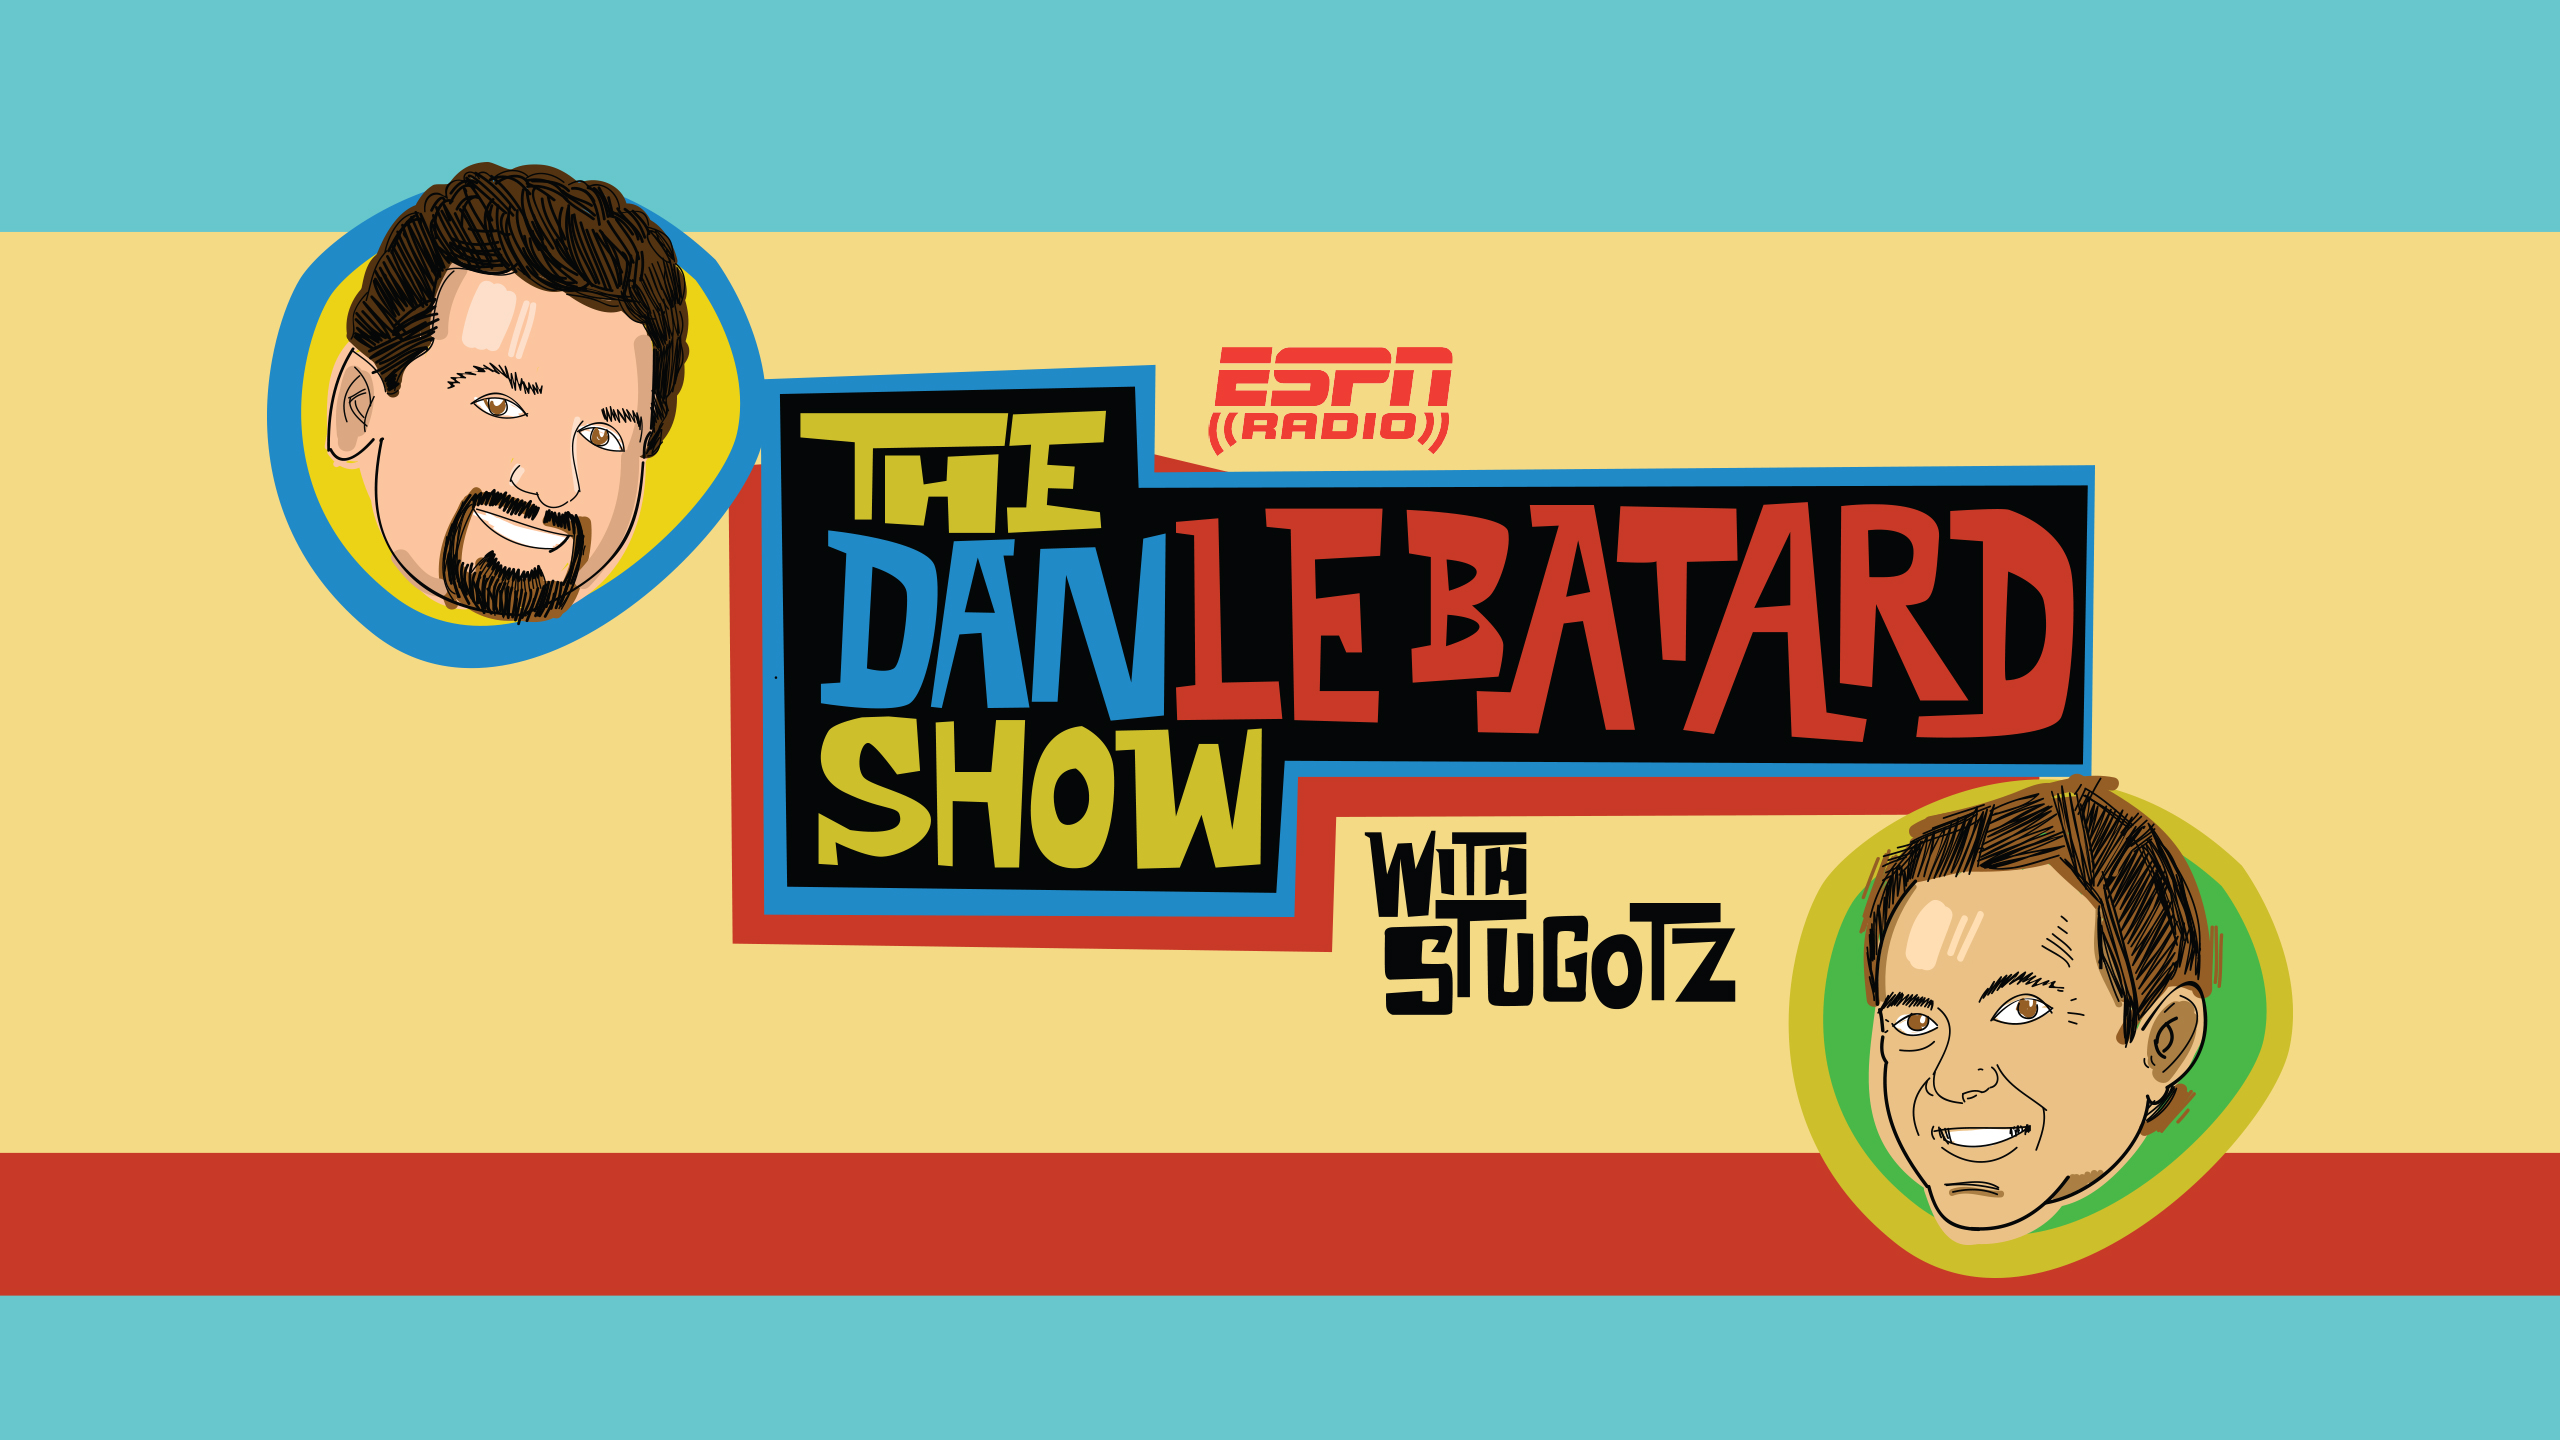 Tue, 11/20 - The Dan Le Batard Show with Stugotz Presented by Progressive